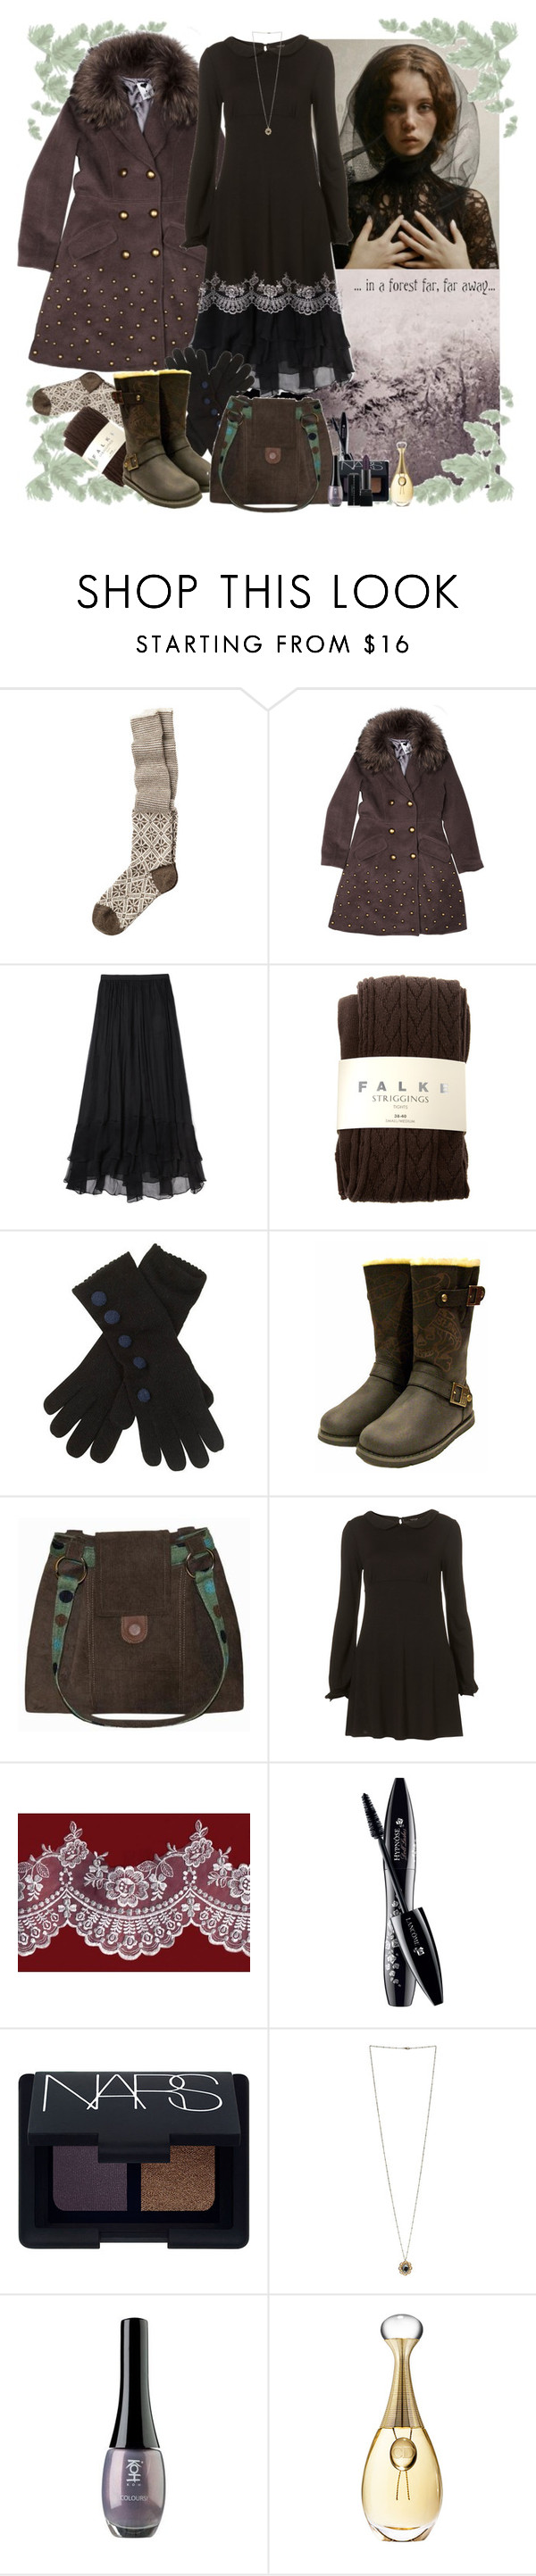 """."" by fieruta ❤ liked on Polyvore featuring Toast, Profondo Rosso, Elizabeth and James, Falke, INDIE HAIR, Lancôme, NARS Cosmetics, Miss Selfridge, Gareth Pugh and Christian Dior"